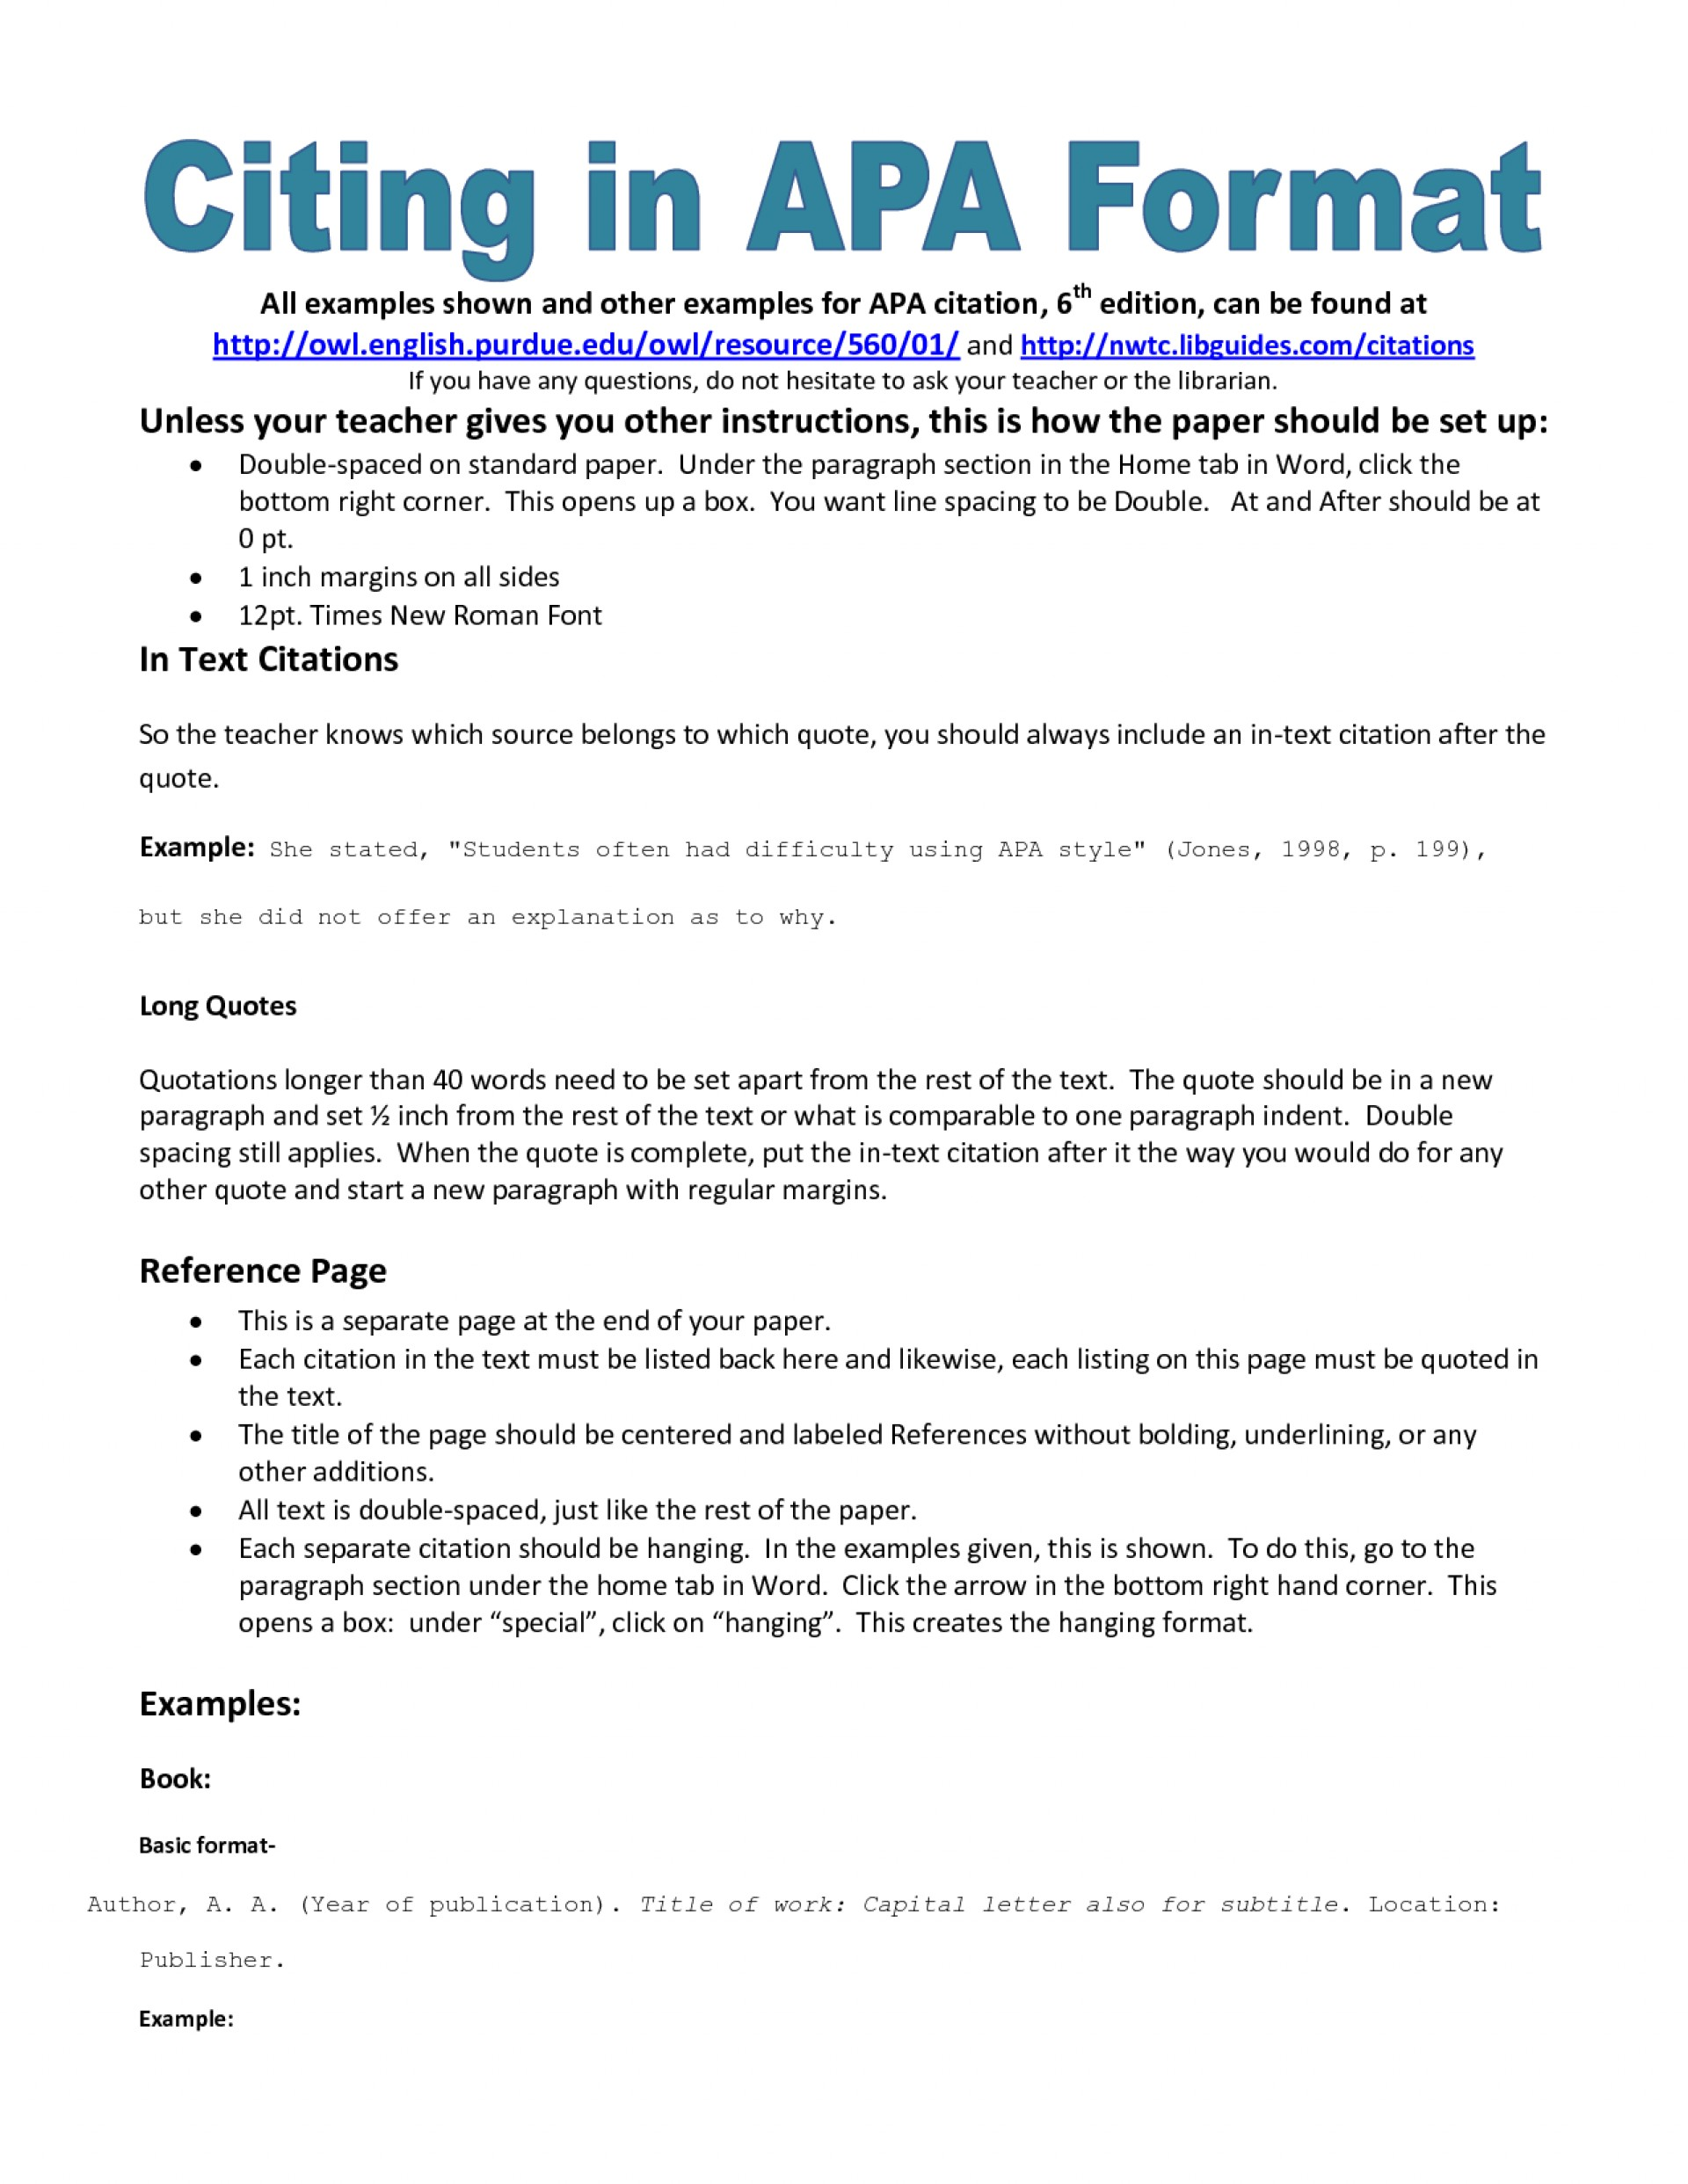 005 In Text Citation Research Awful Paper Sample How To Do Citations For A Mla Format Citing 1920